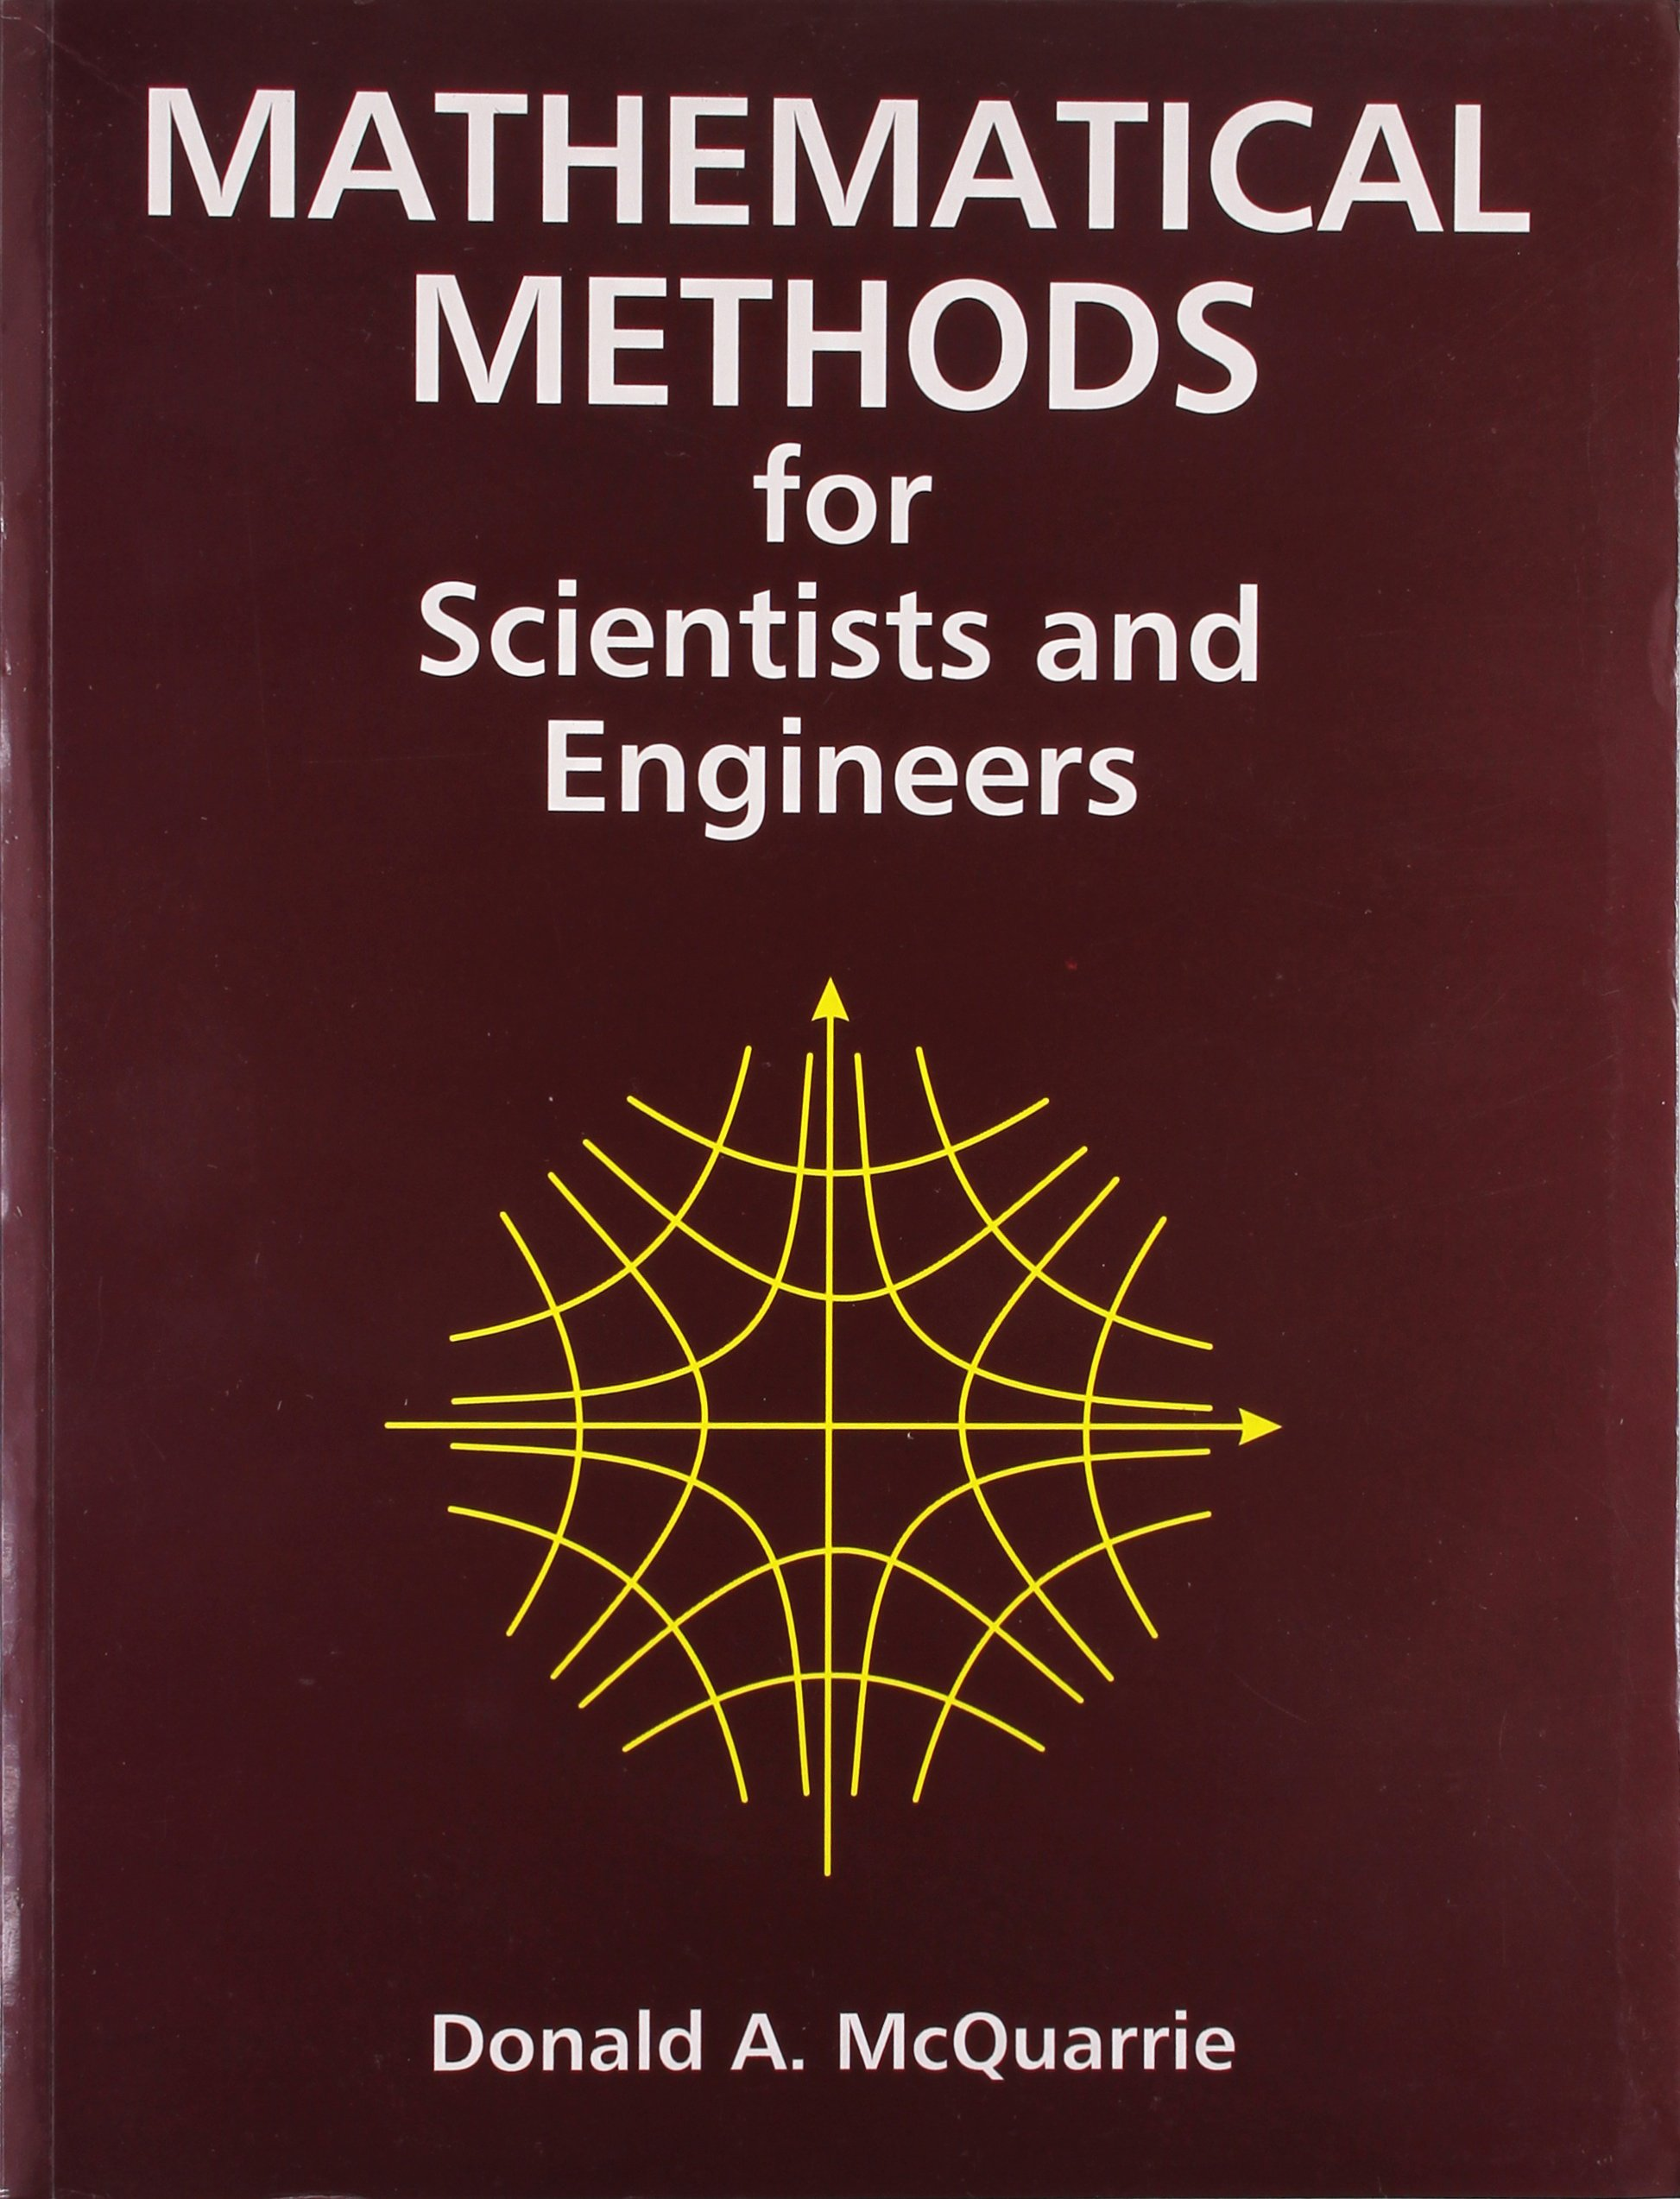 Mathematical methods for scientists engineers donald a mcquarrie mathematical methods for scientists engineers donald a mcquarrie 9788130909974 amazon books fandeluxe Images